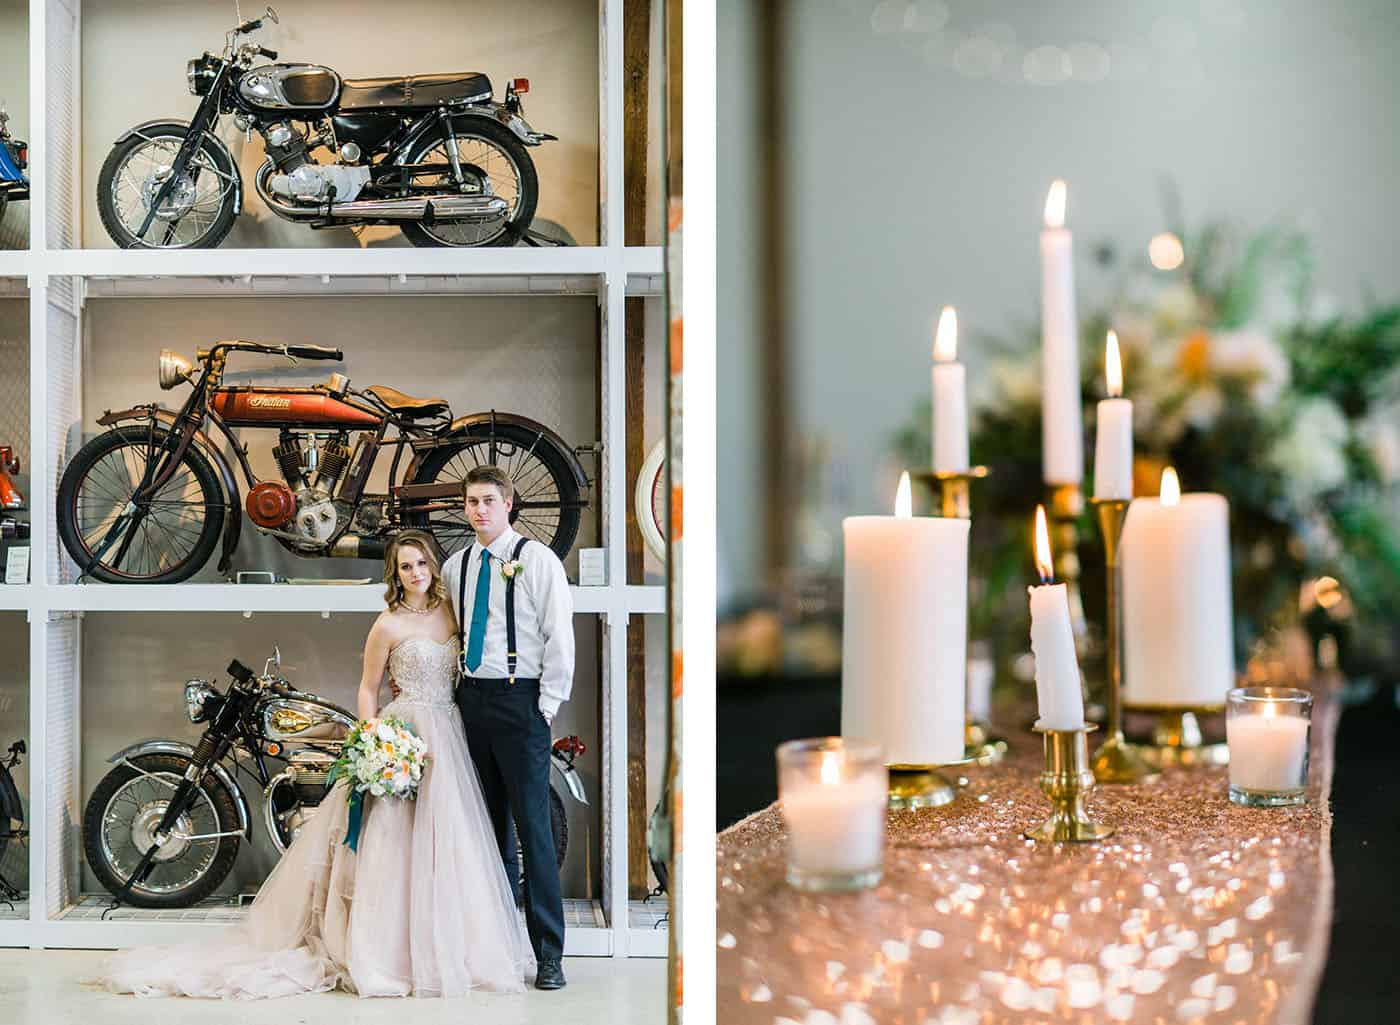 bride and groom with vintage motorcycles and candles rachael osborn client questions